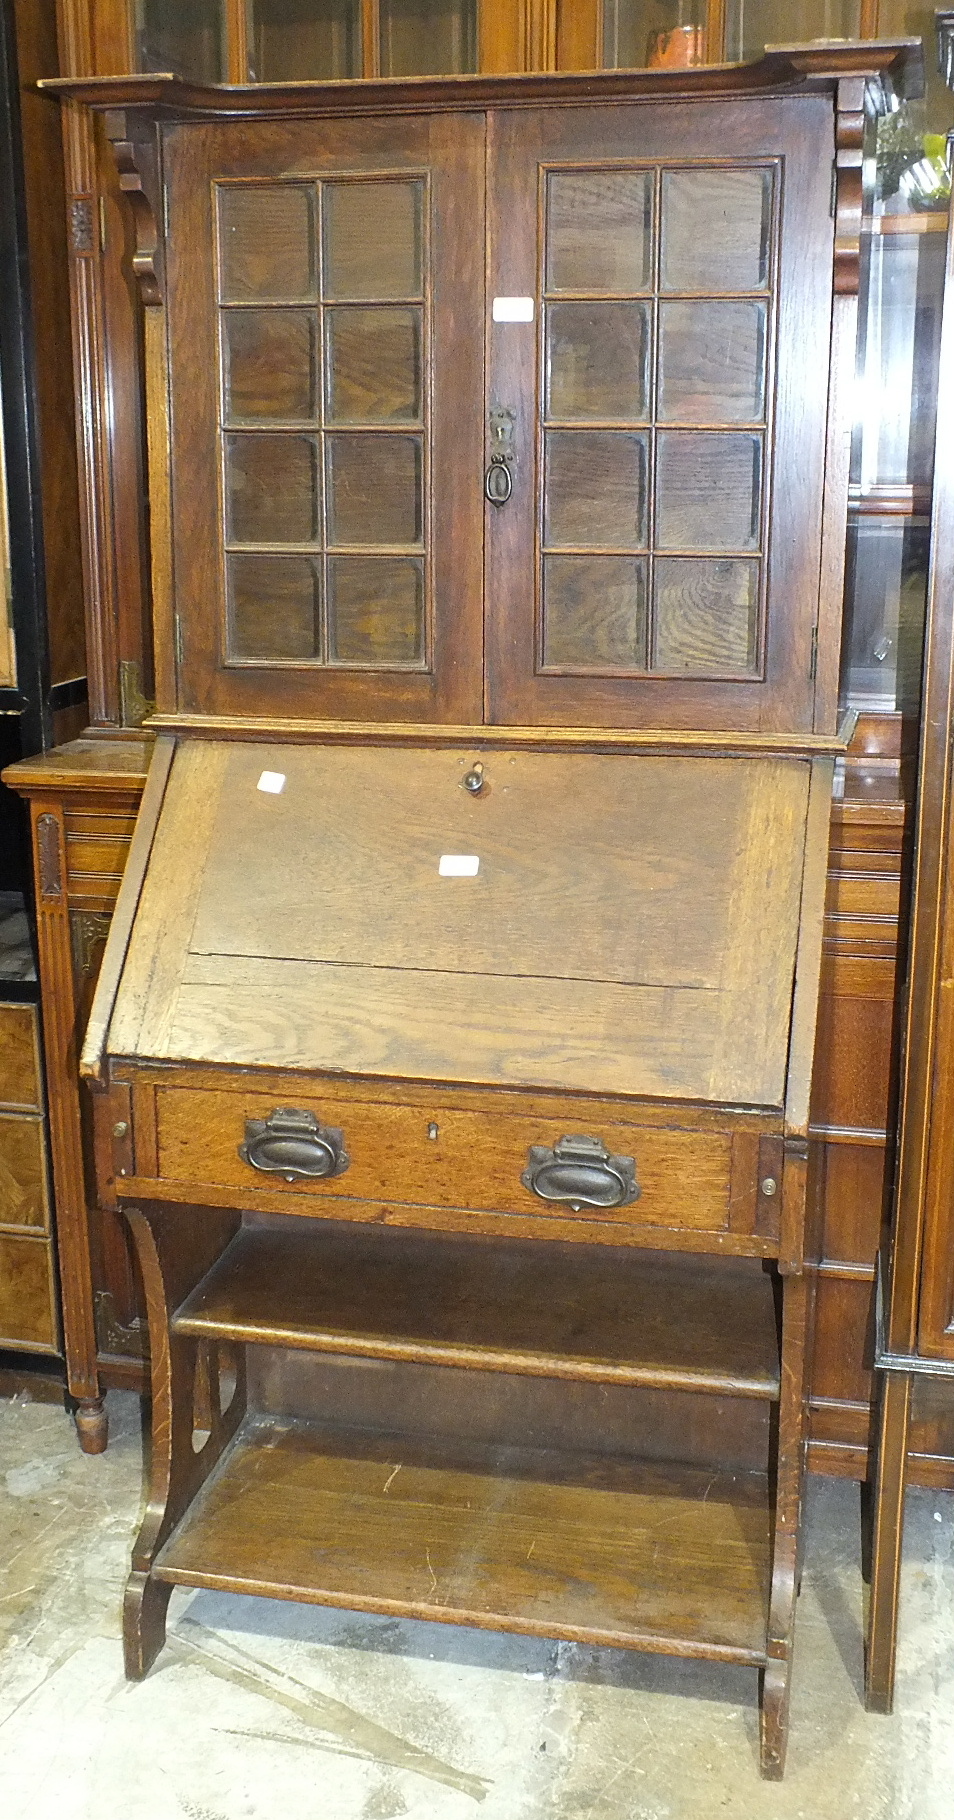 Lot 28 - An Edwardian low oak bureau bookcase, the top fitted with a pair of glazed doors above a fall front,